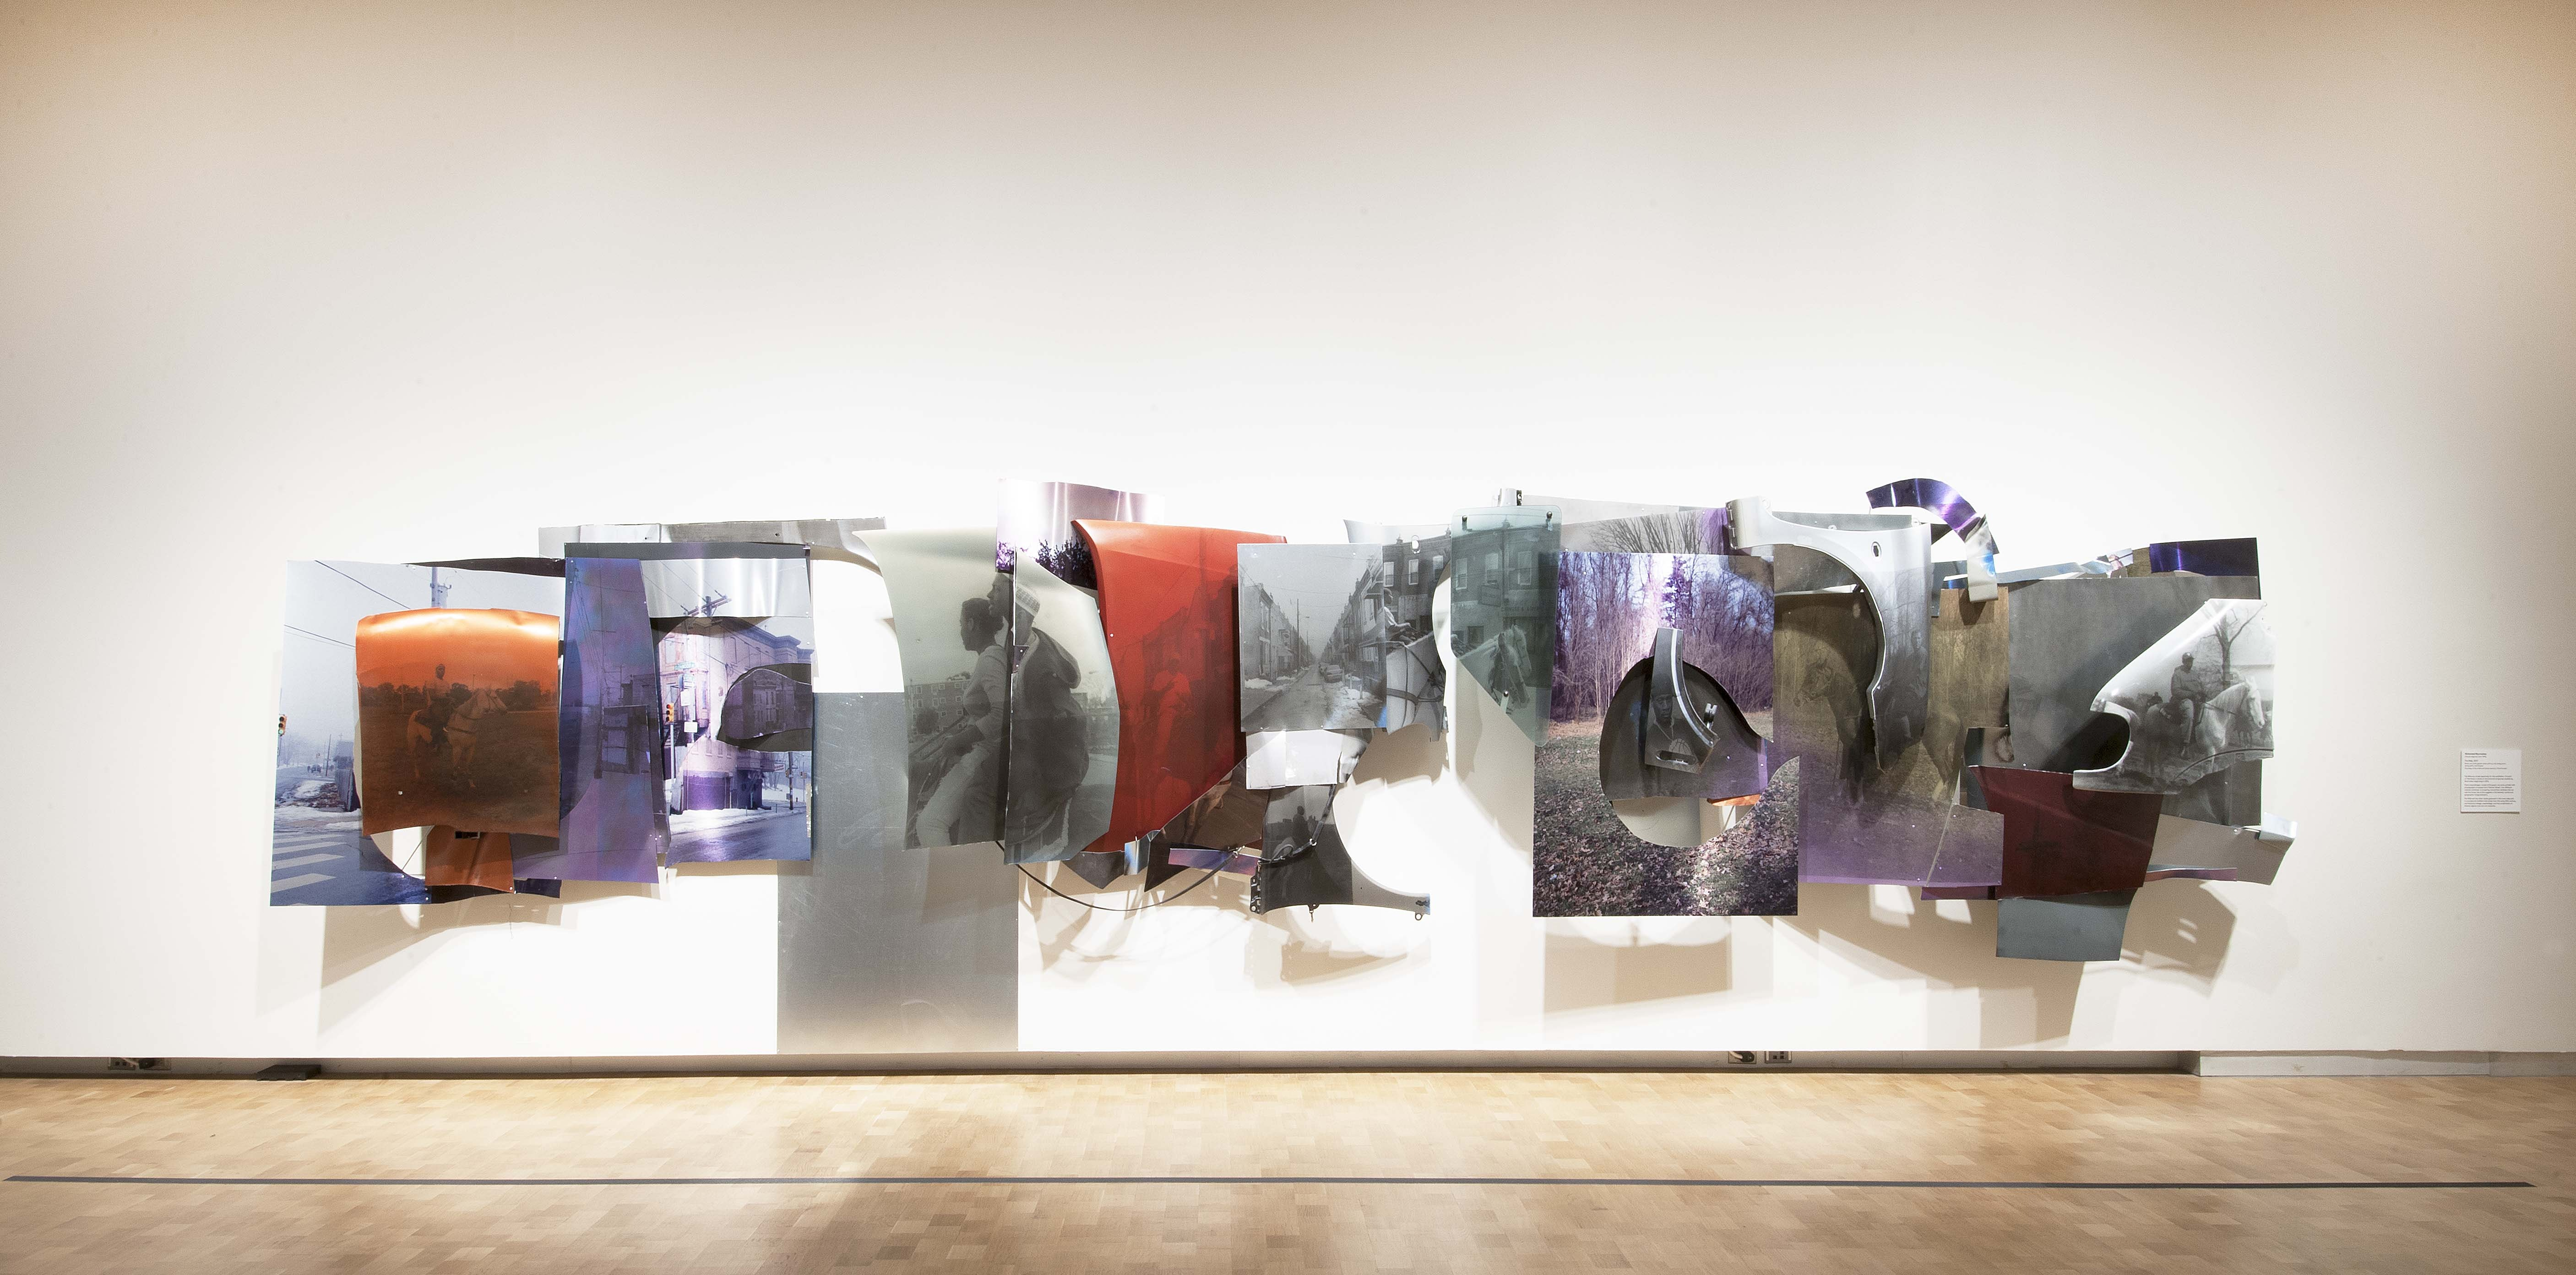 A long construction of metal car parts printed with images from Horse Day is hung in the exhibition.